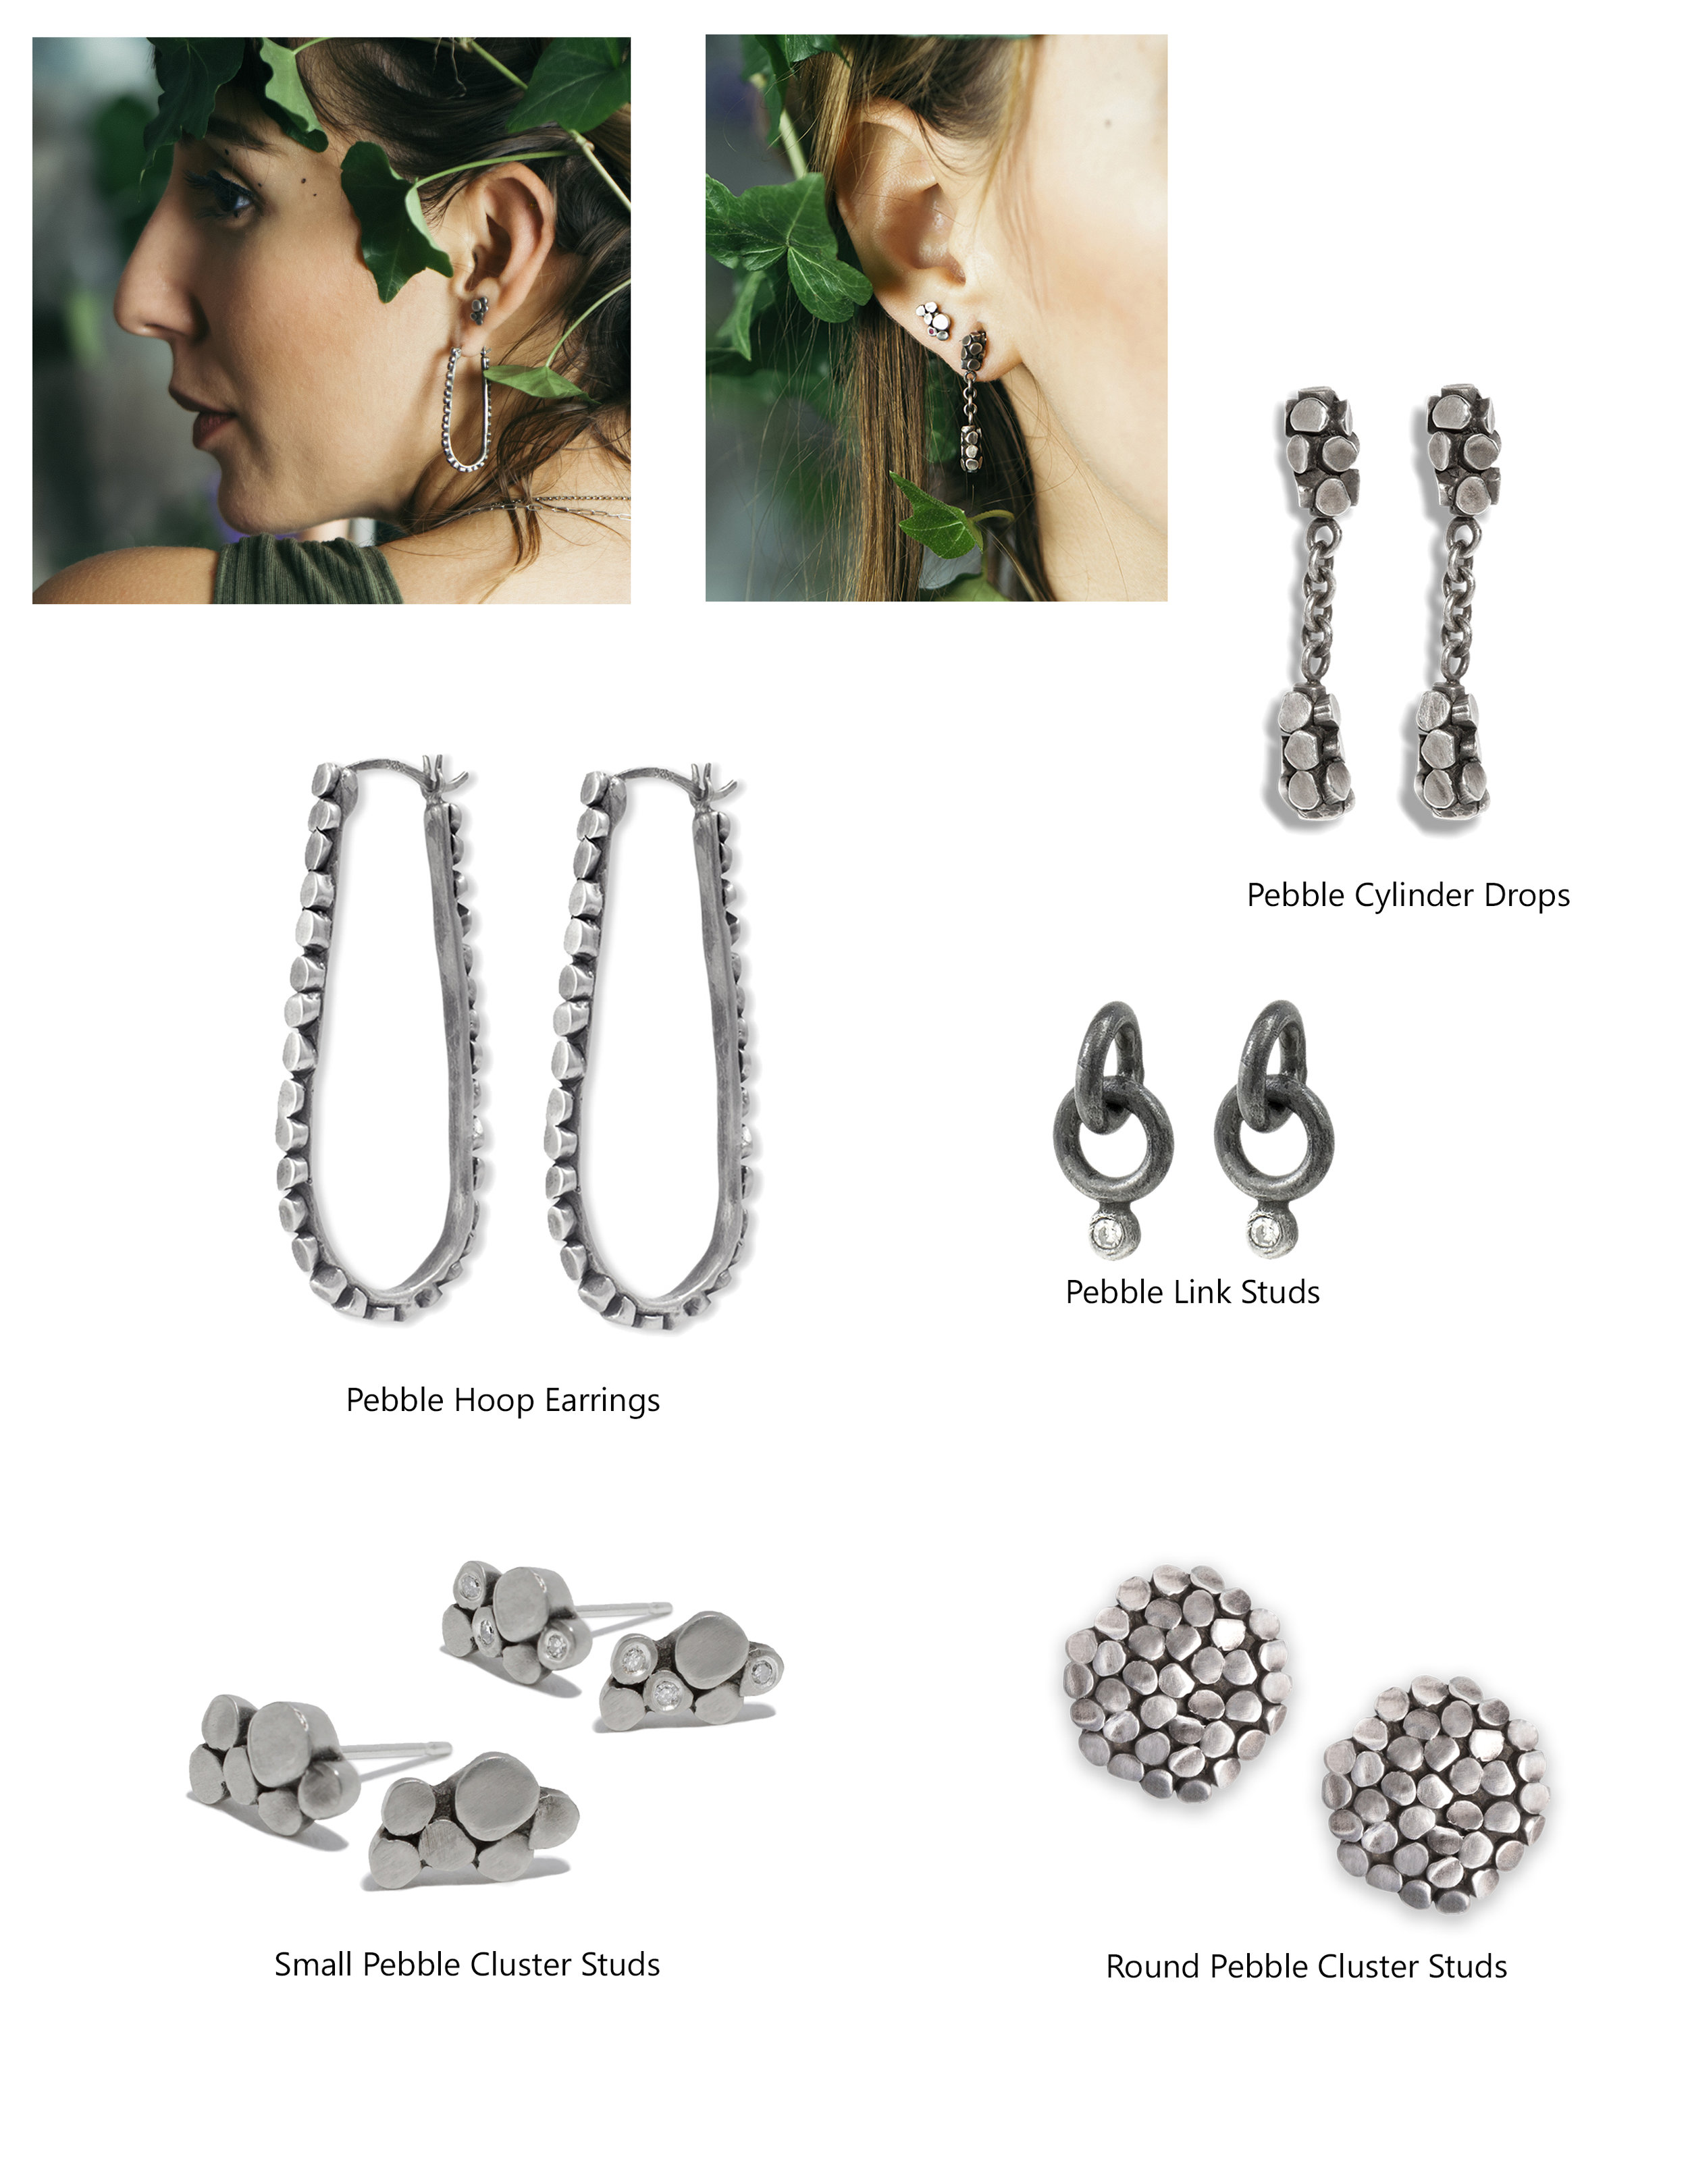 z Garden Collection Page with Earrings.jpg